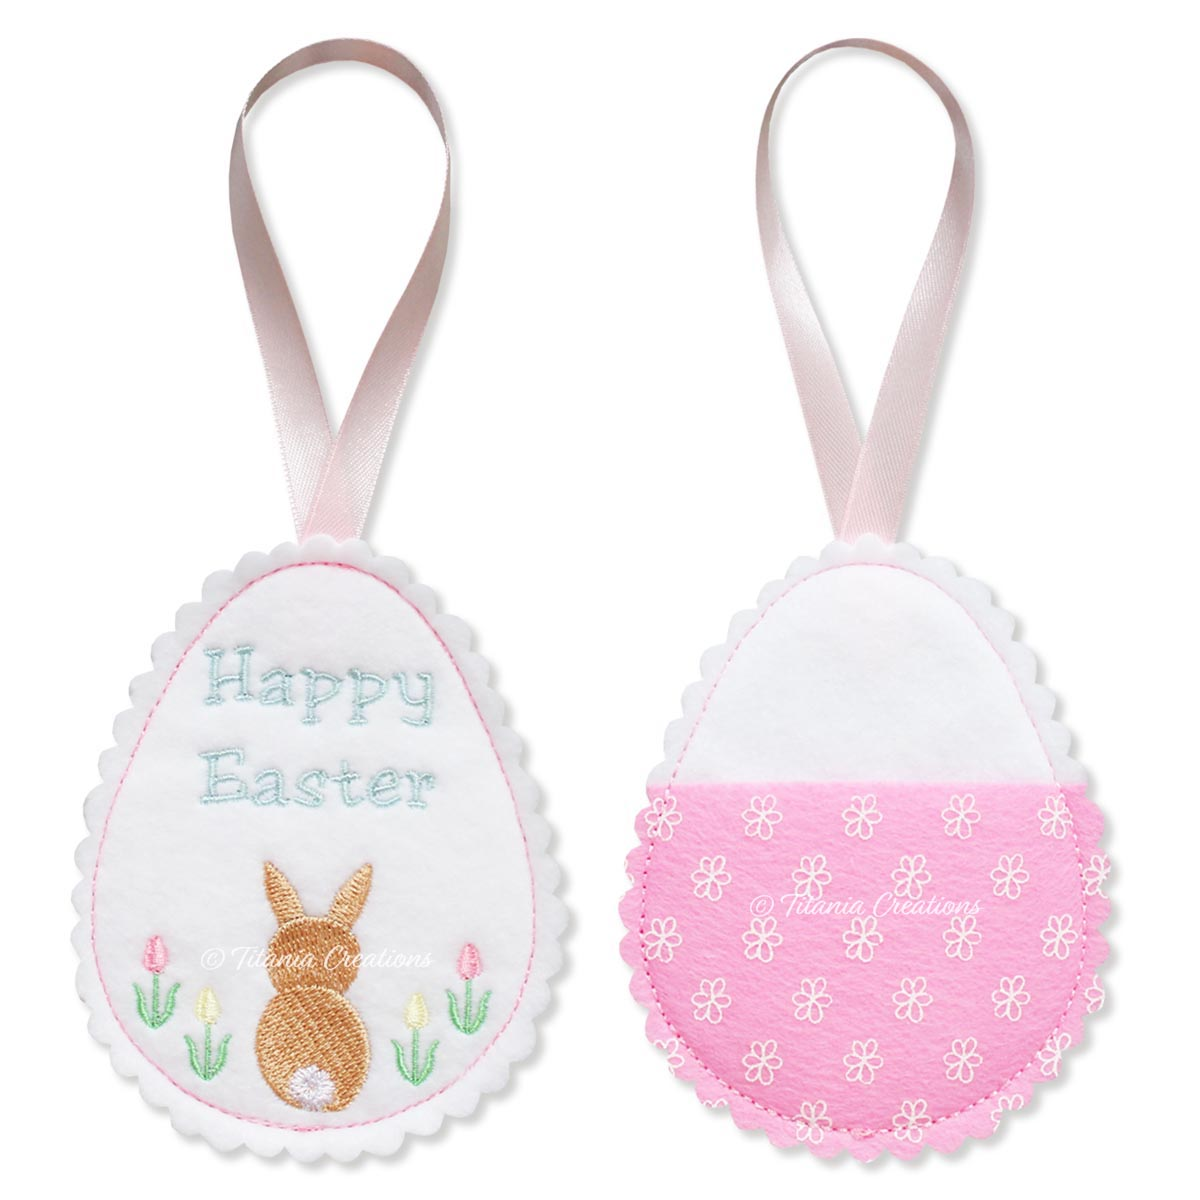 ITH Bunny Easter Egg Treat Holder 4x4 5x7